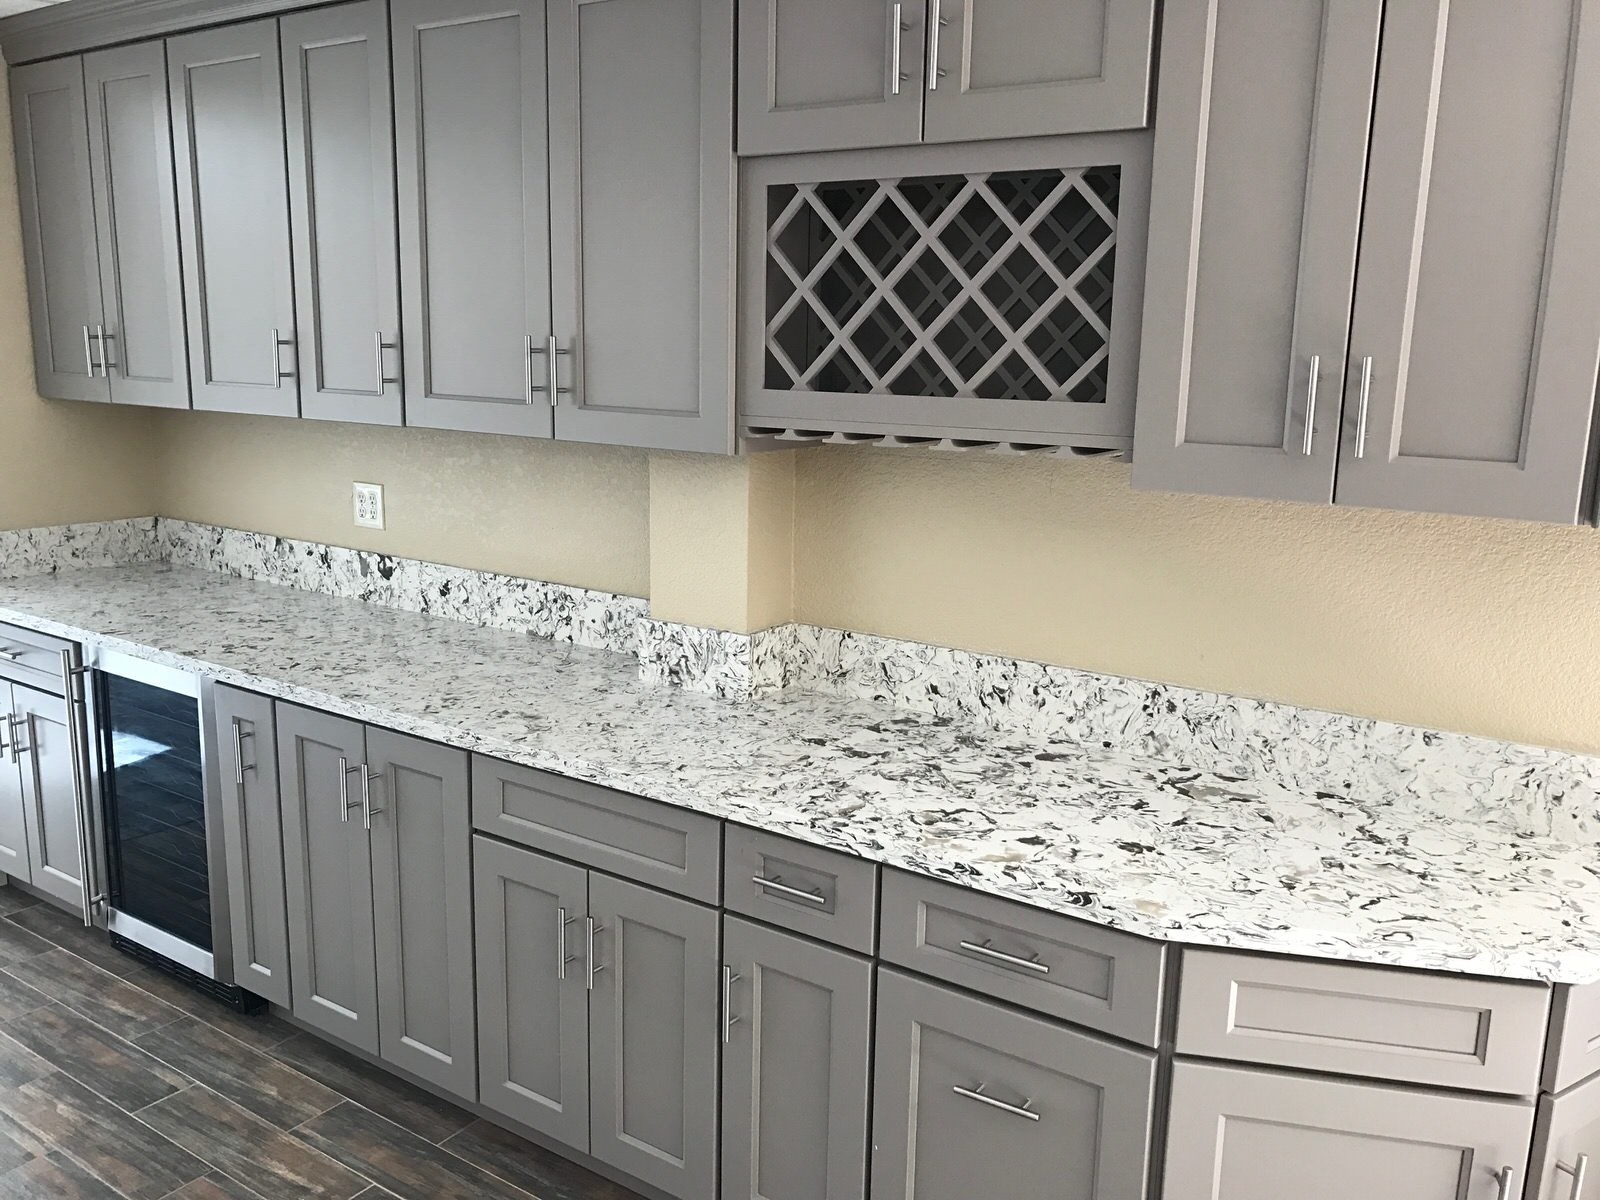 Your home improvements refference granite countertops home depot or - Your Home Improvements Refference Cheap Granite Countertops Granite Quartz Countertops Archives J Home Improvement Download